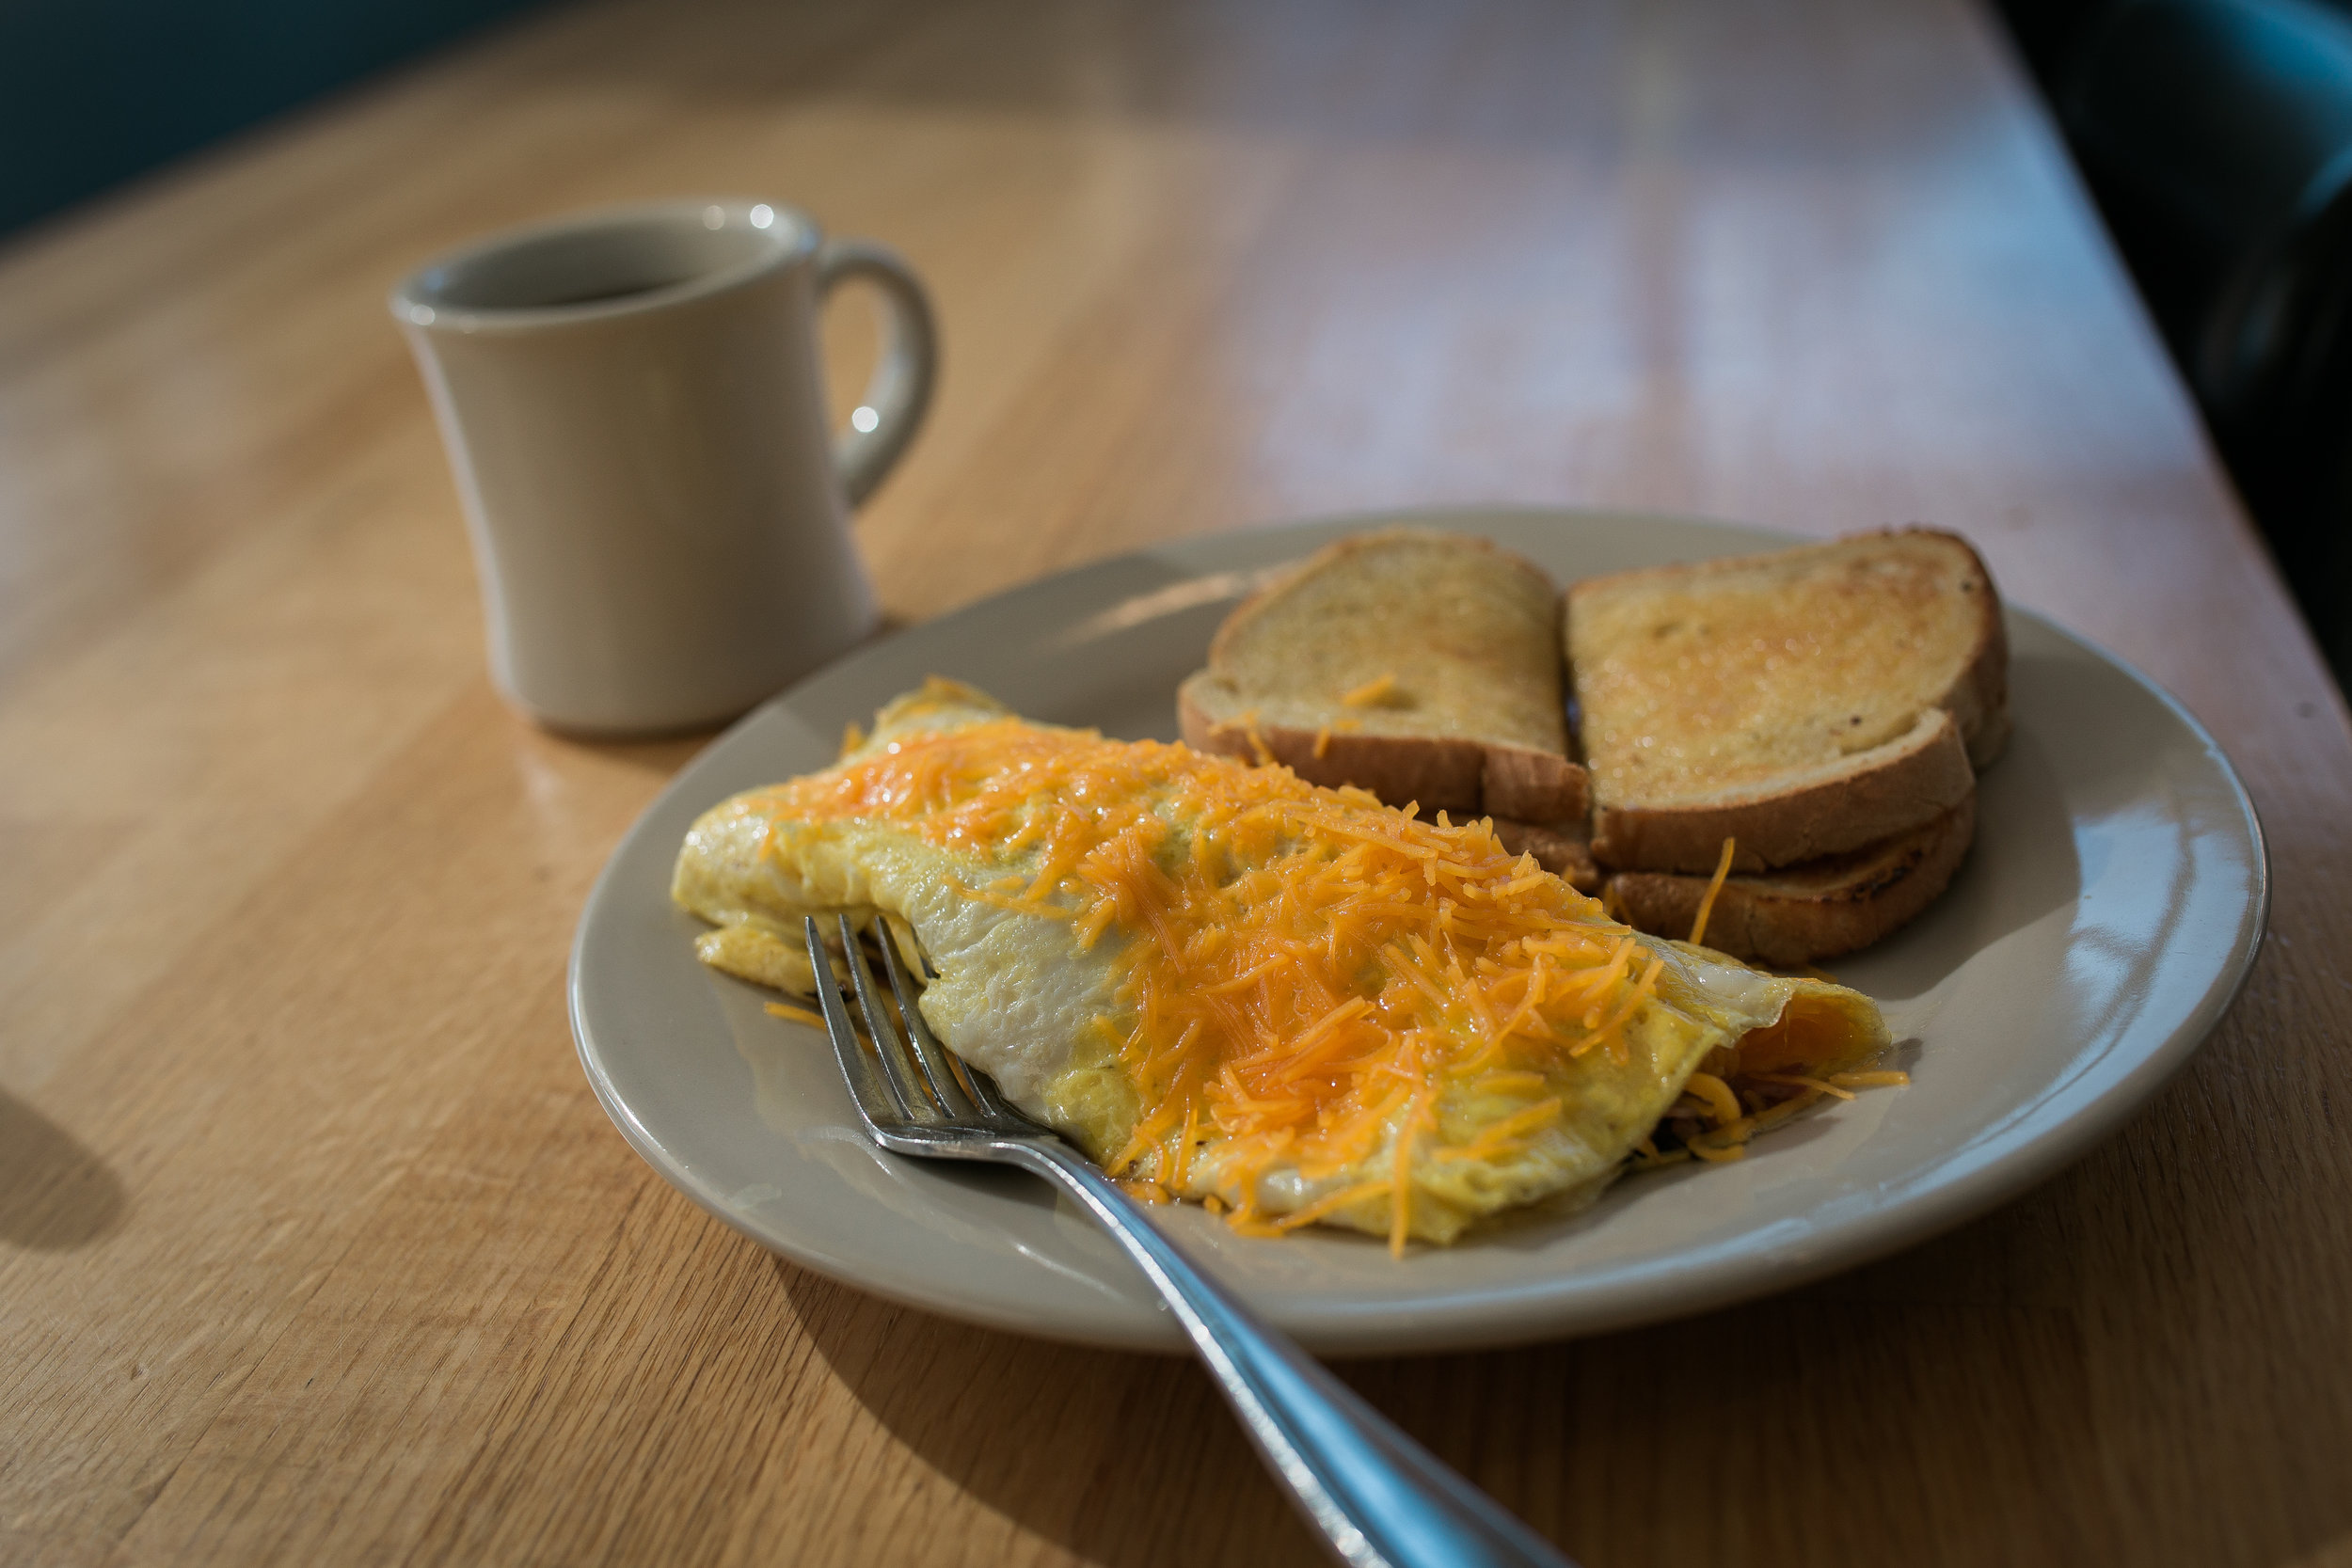 egg omelette smothered in shredded cheddar cheese, buttered wheat toast and a cup of coffee